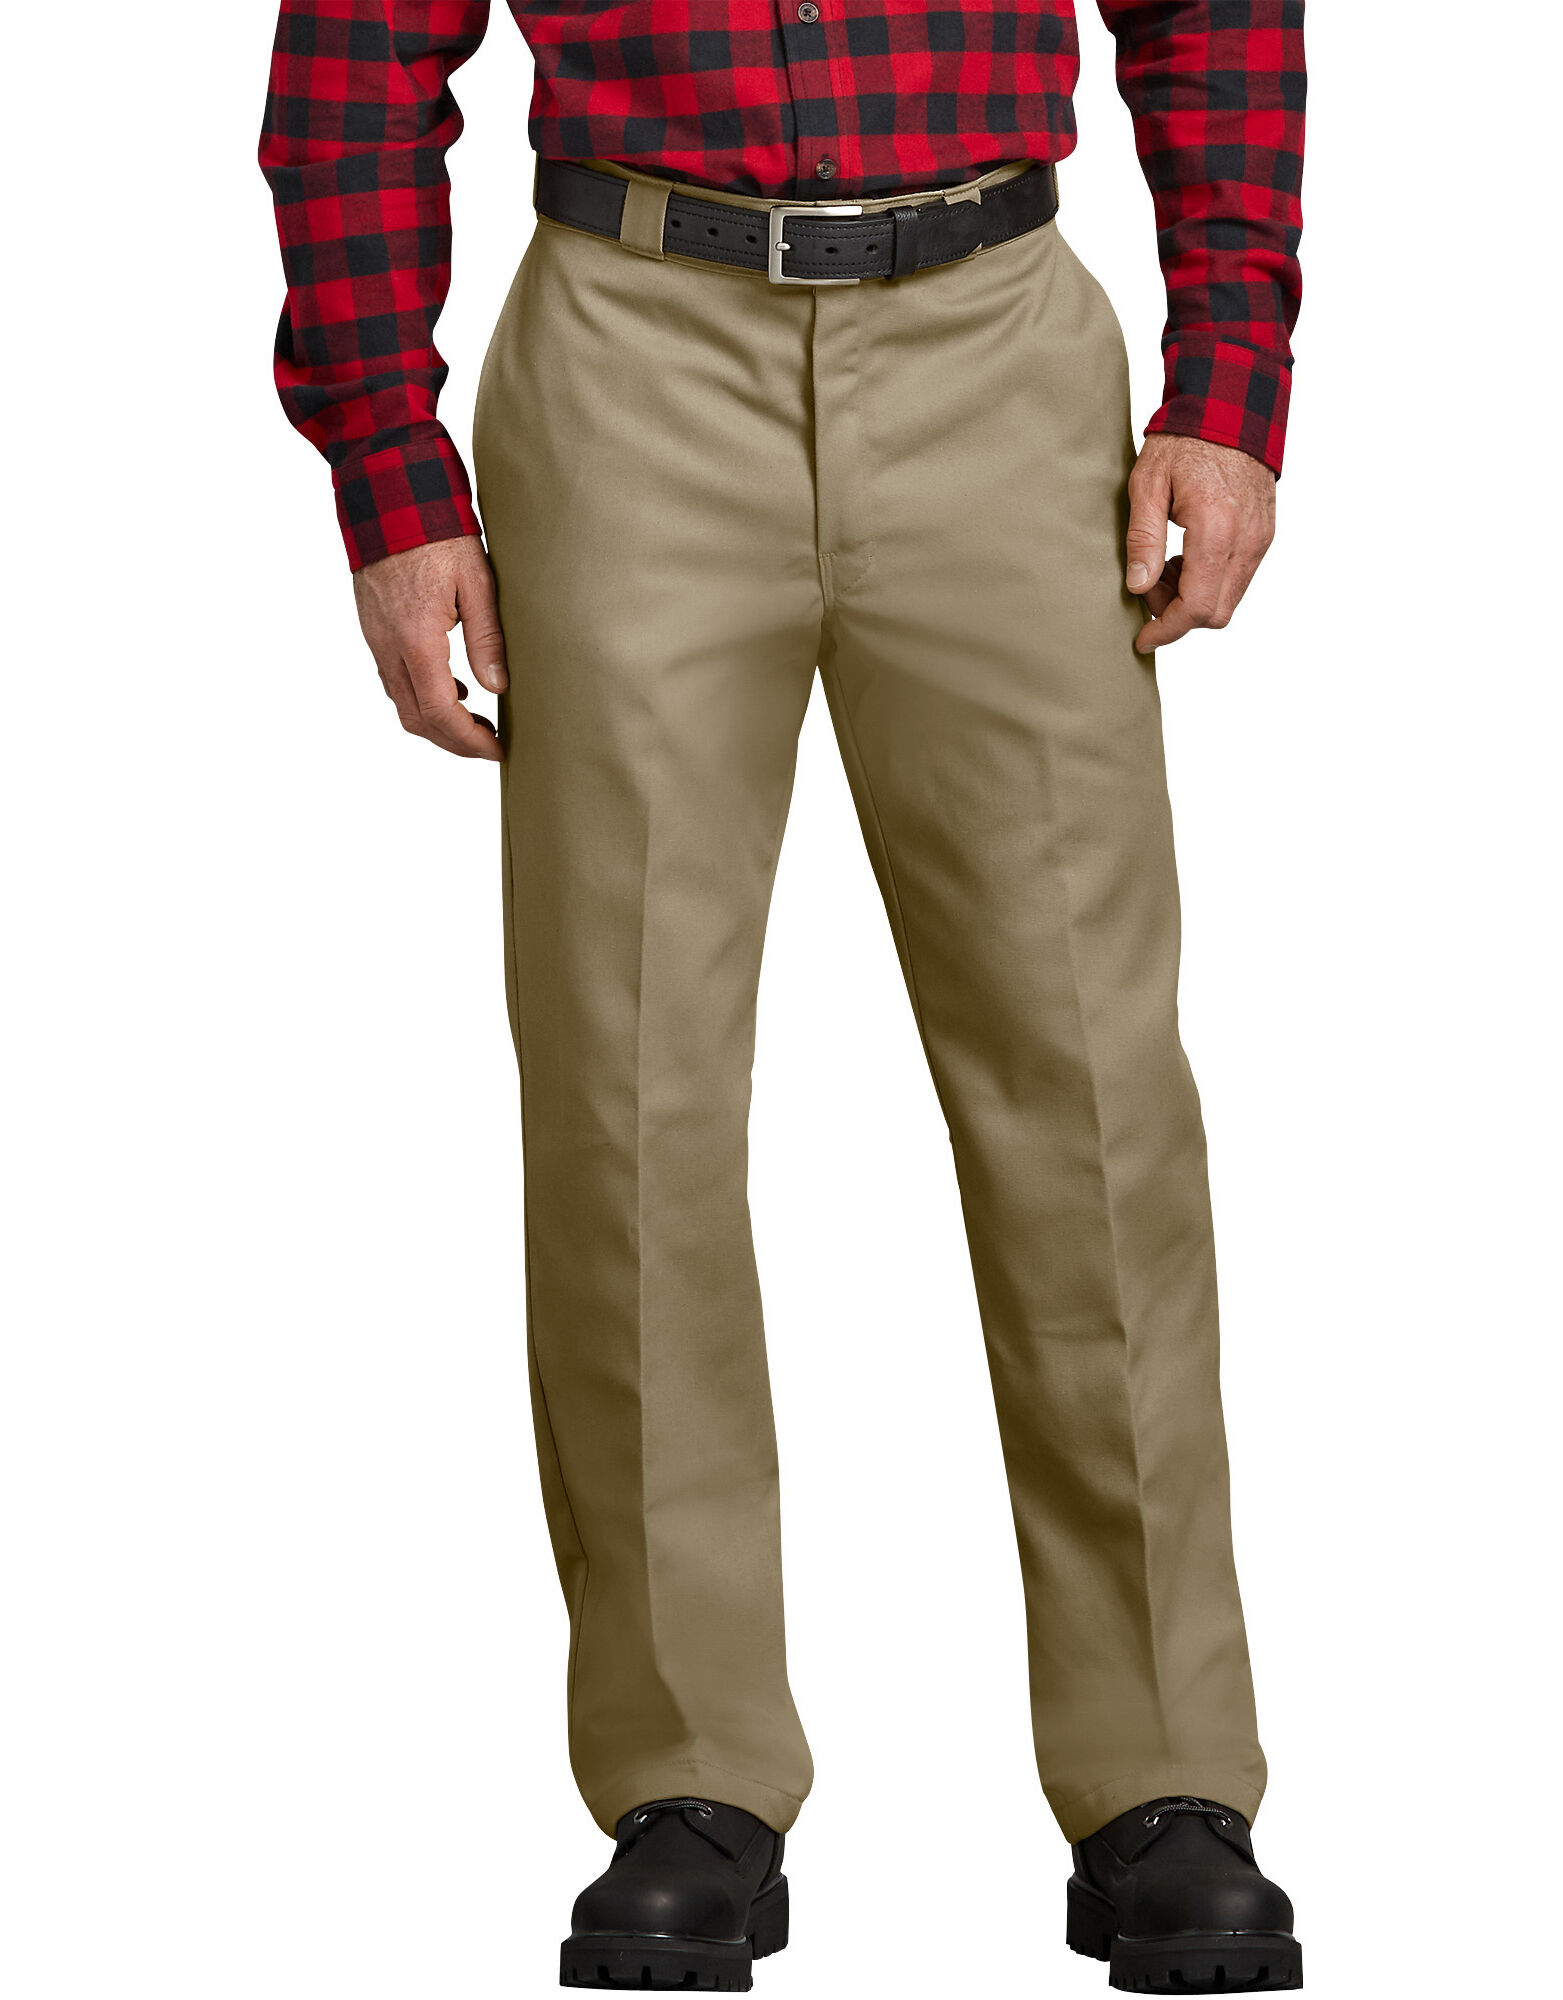 The Wrangler Men's Fleece Lined Carpenter Pant offers the functionality and comfort you need during cooler seasons. It features classic carpenter styling and a relaxed fit. With sewn in lining that won't bulk or bag, these carpenters will keep you warm and looking great/5(34).